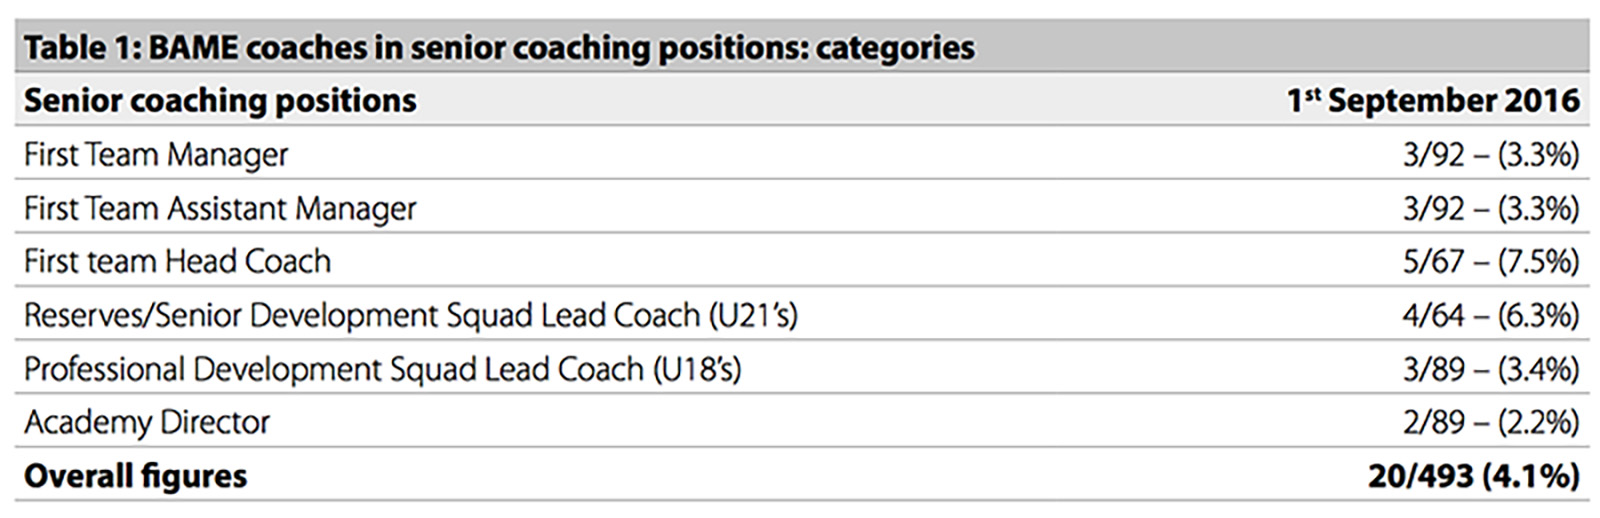 Figures on BAME representation in senior coaching roles, September 2016